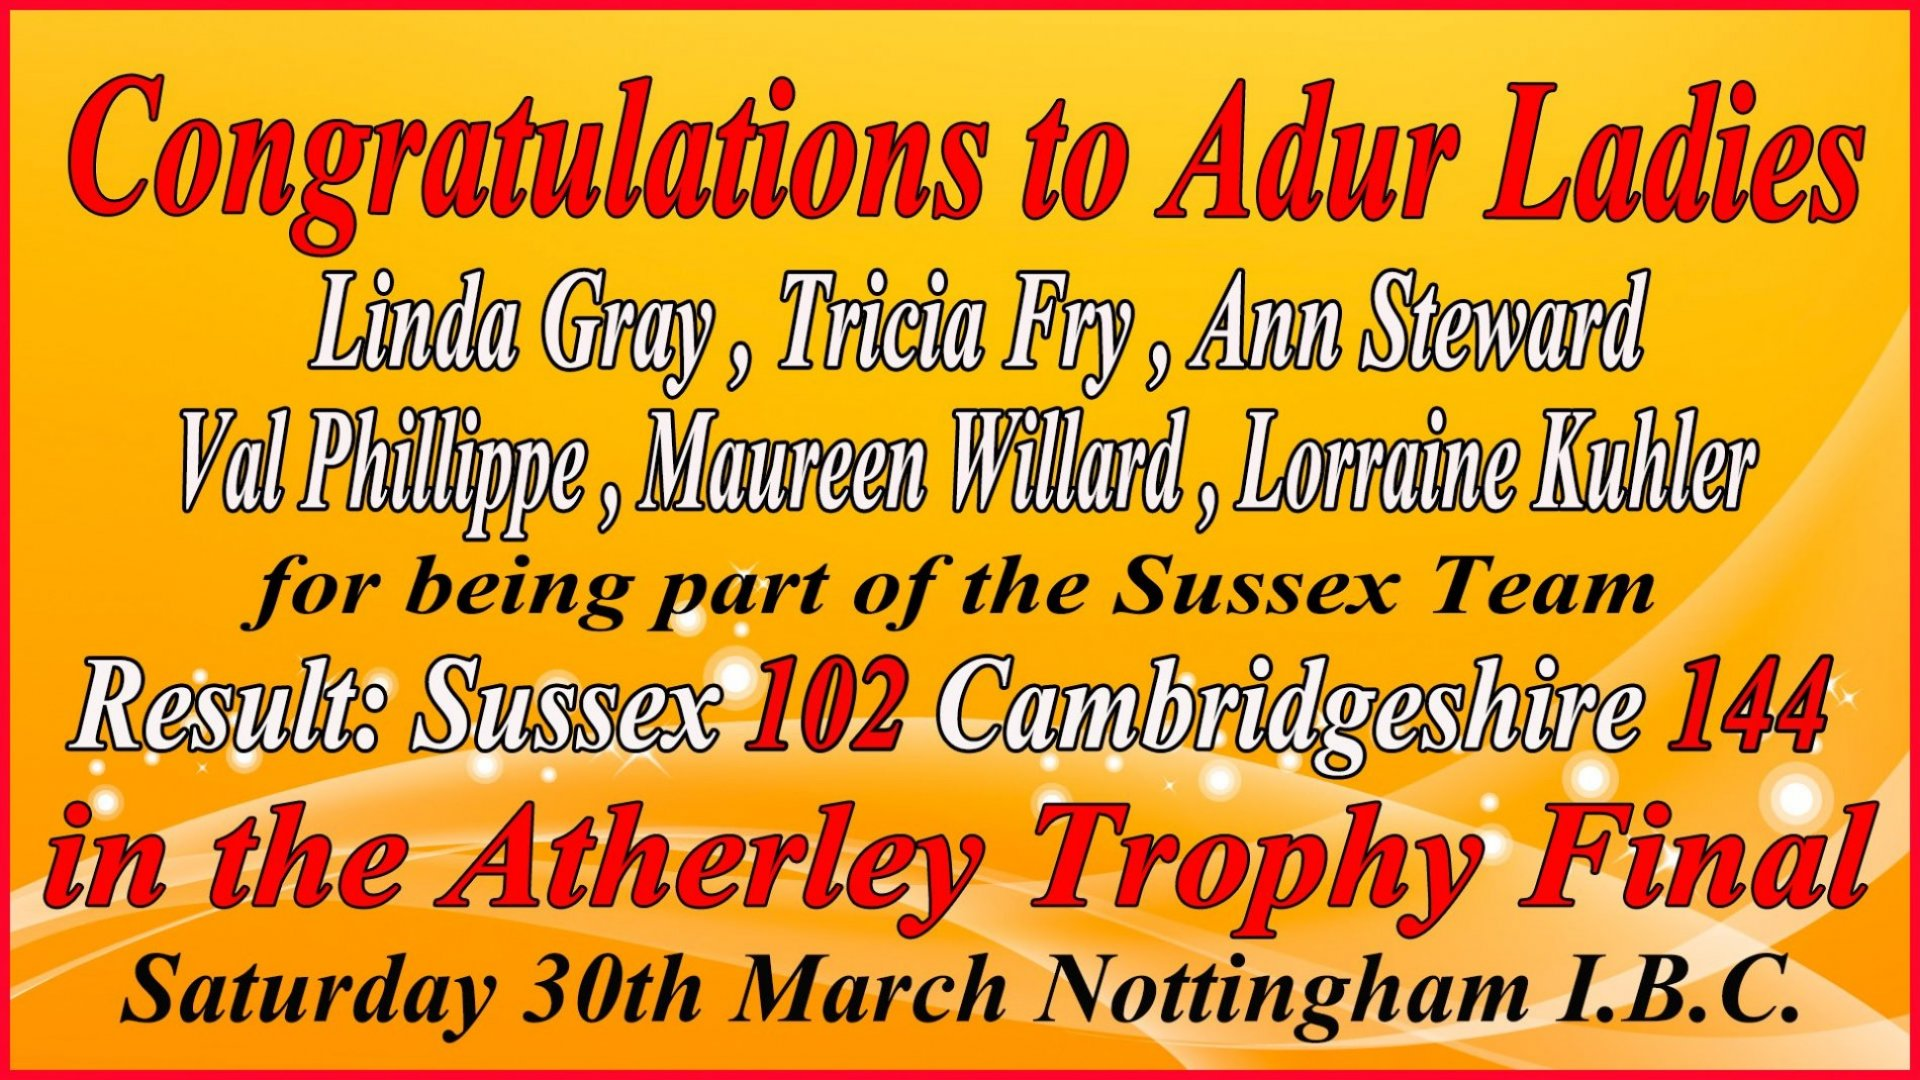 Atherley Trophy Final - Sussex v Cambridgeshire - RESULT - Saturday 30.3.19